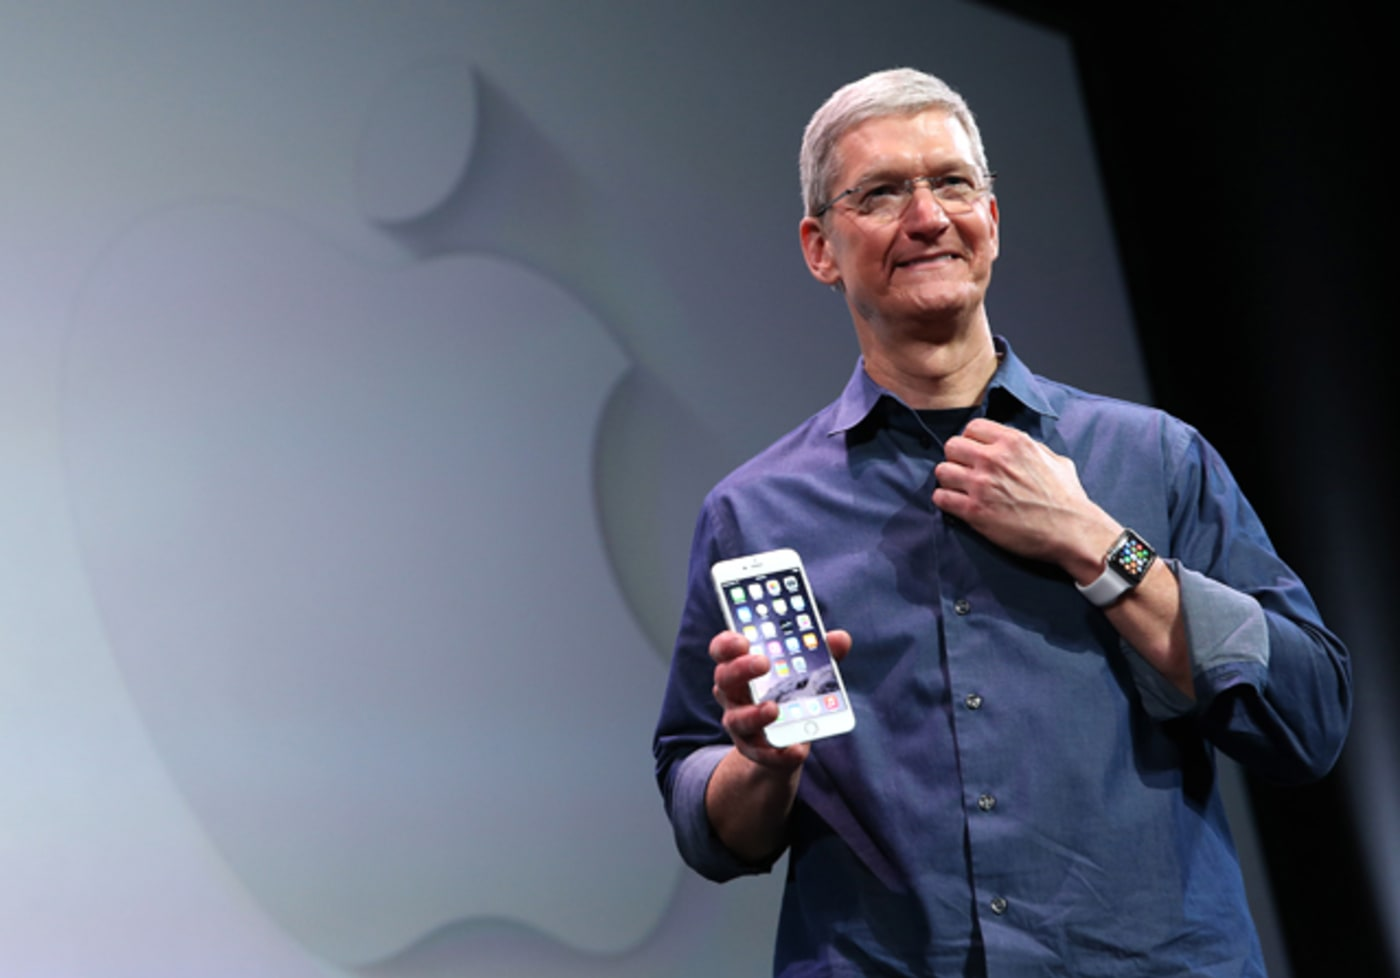 Tim Cook shows off iPhone 6 and the Apple Watch